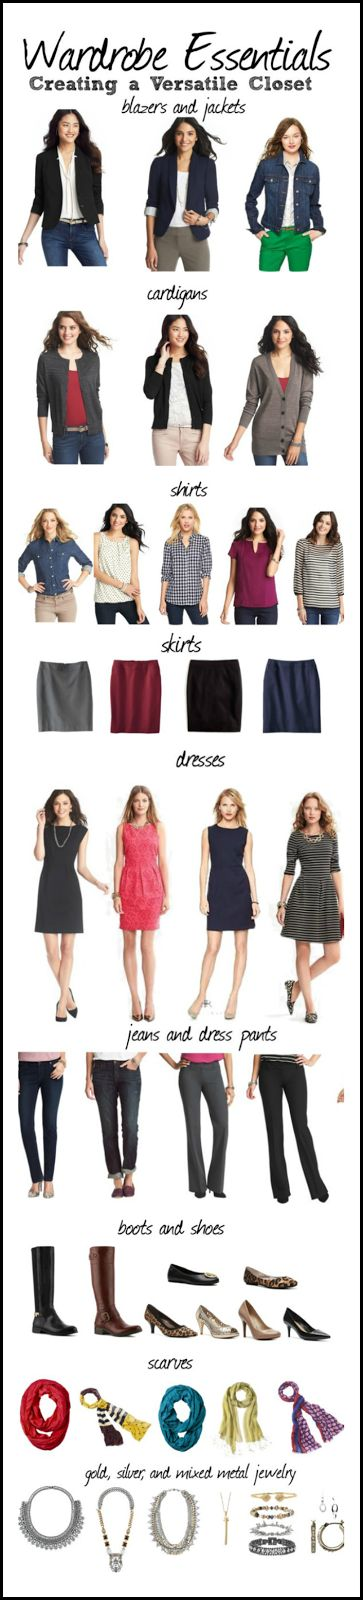 My New Favorite Outfit: Putting All the Pieces Together: Building A Wardrobe